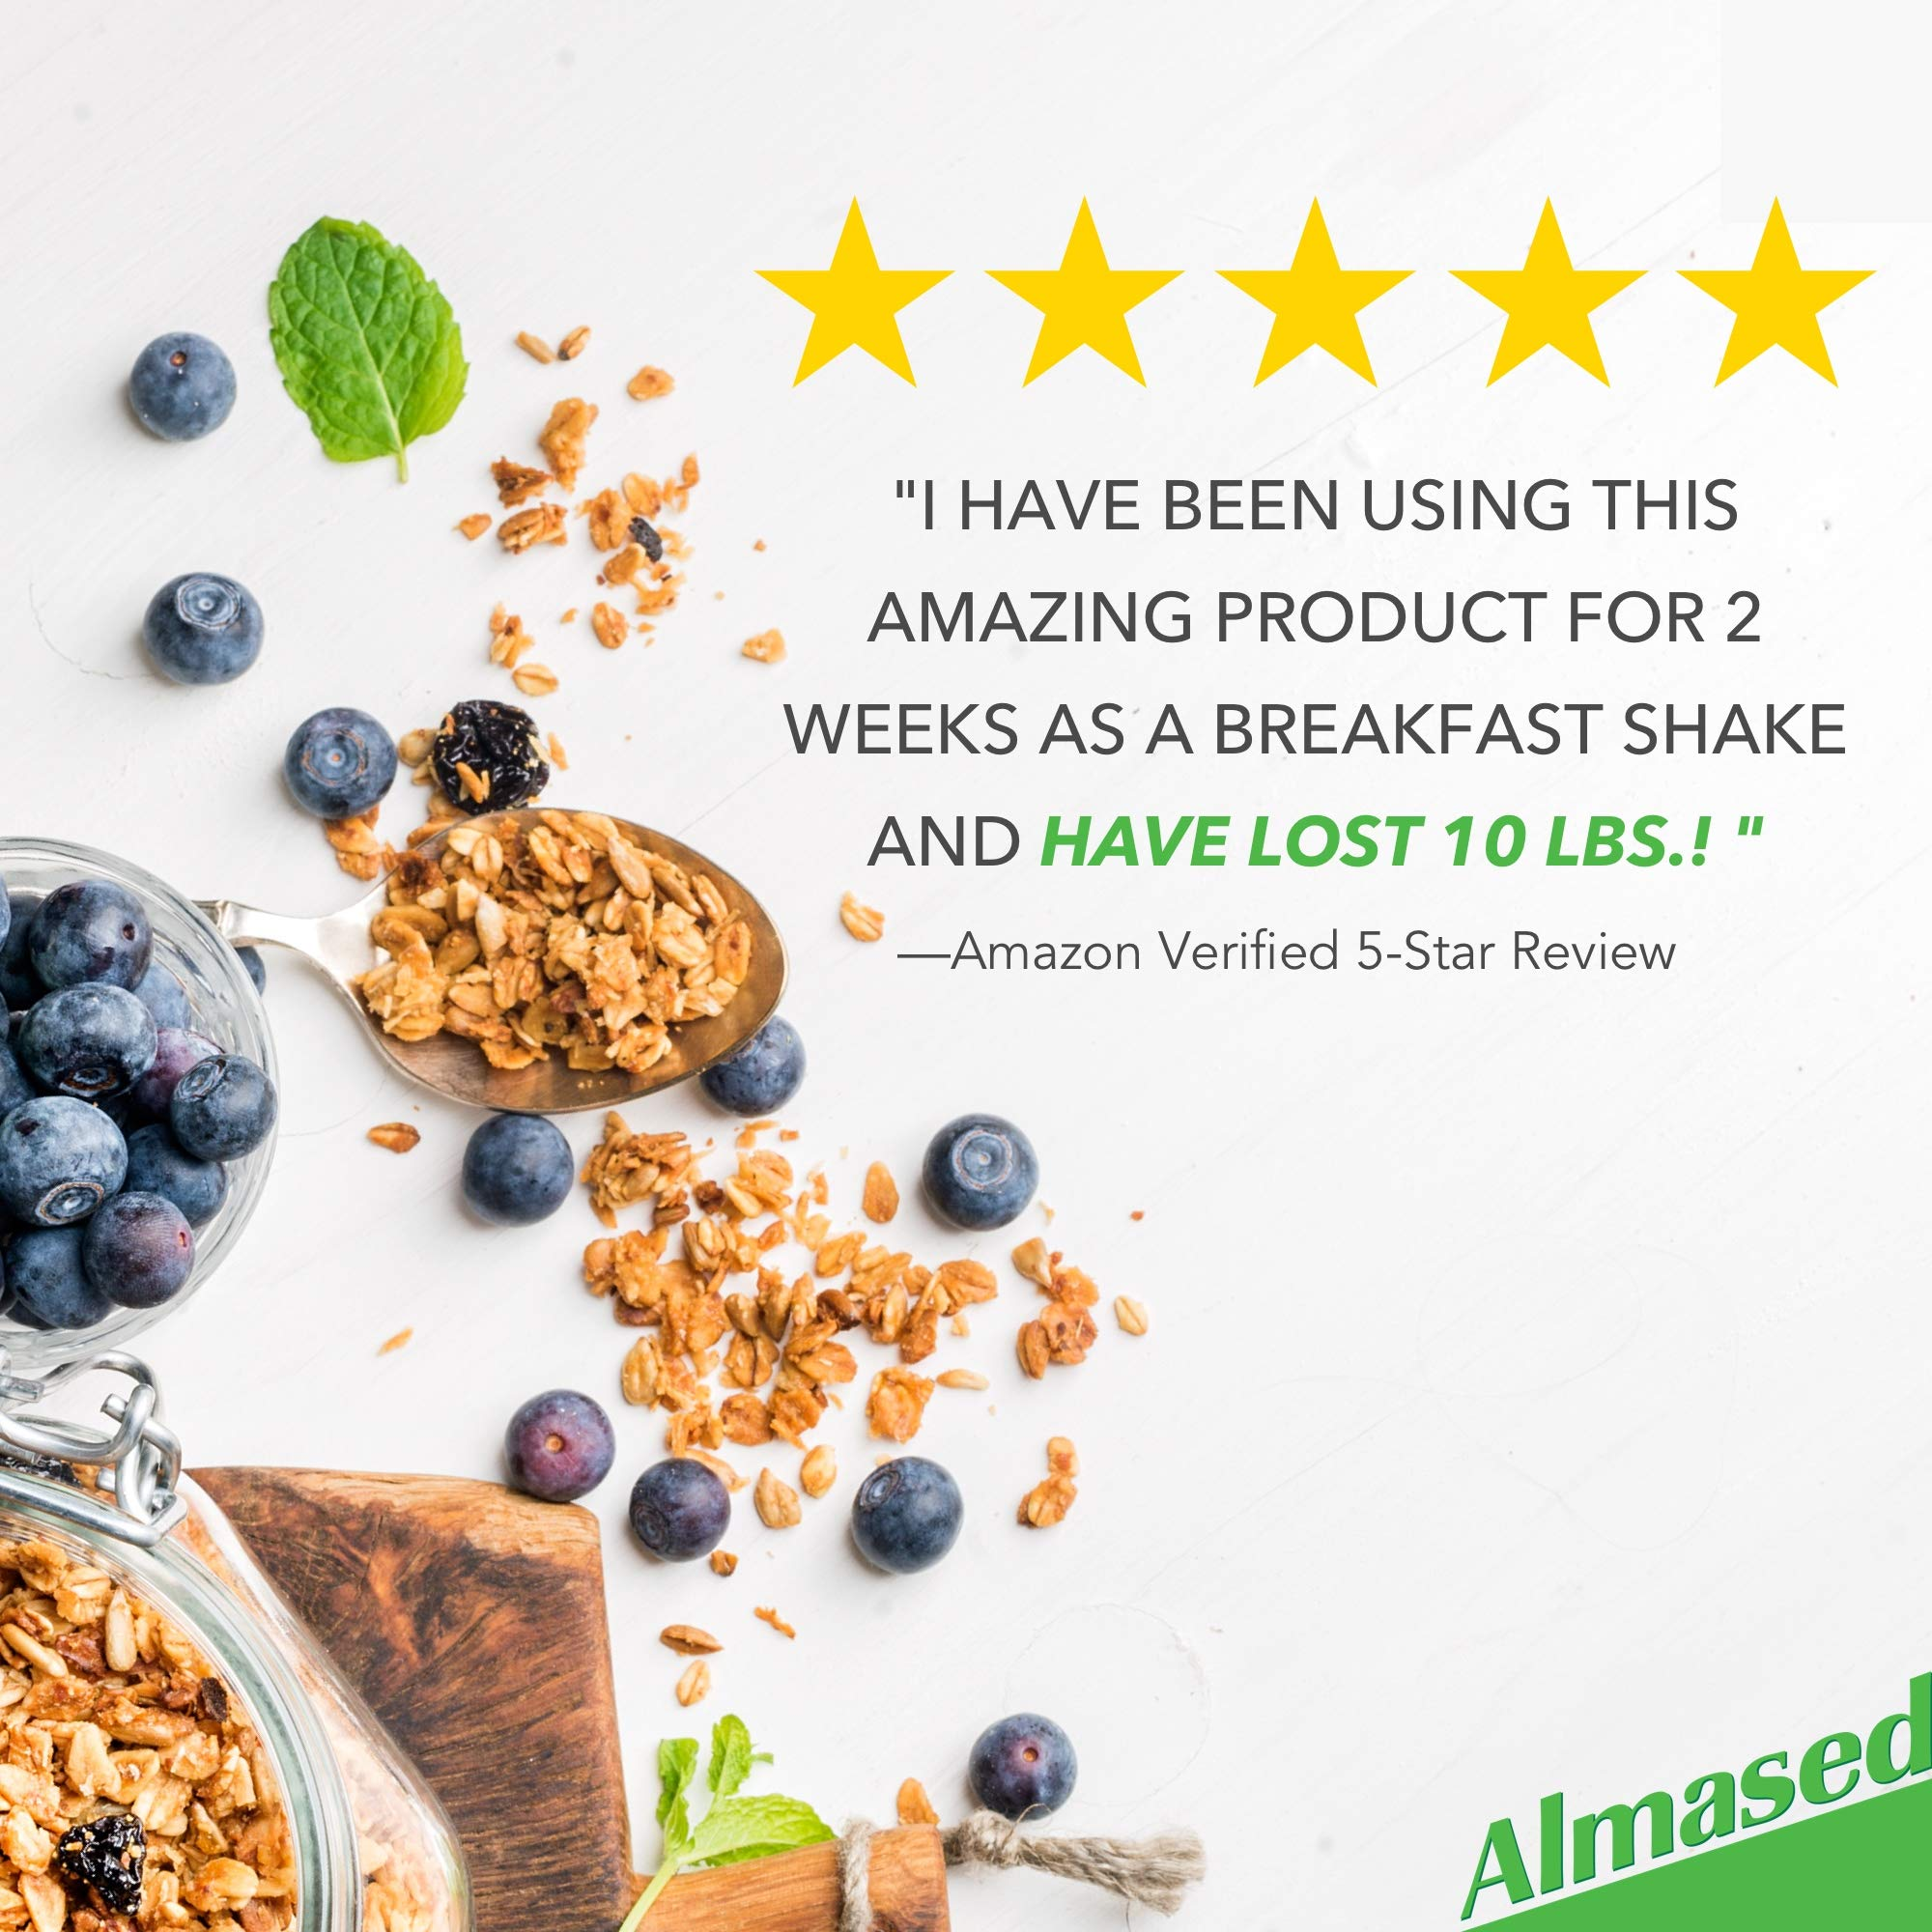 Almased Meal Replacement Shake (3 Pack) with Bonus Bamboo Spoon - 17.6 oz Powder - High Protein Weight Loss Drink, Fat Metabolism Booster - Vegetarian, Gluten Free - 30 Total Servings by Almased (Image #2)